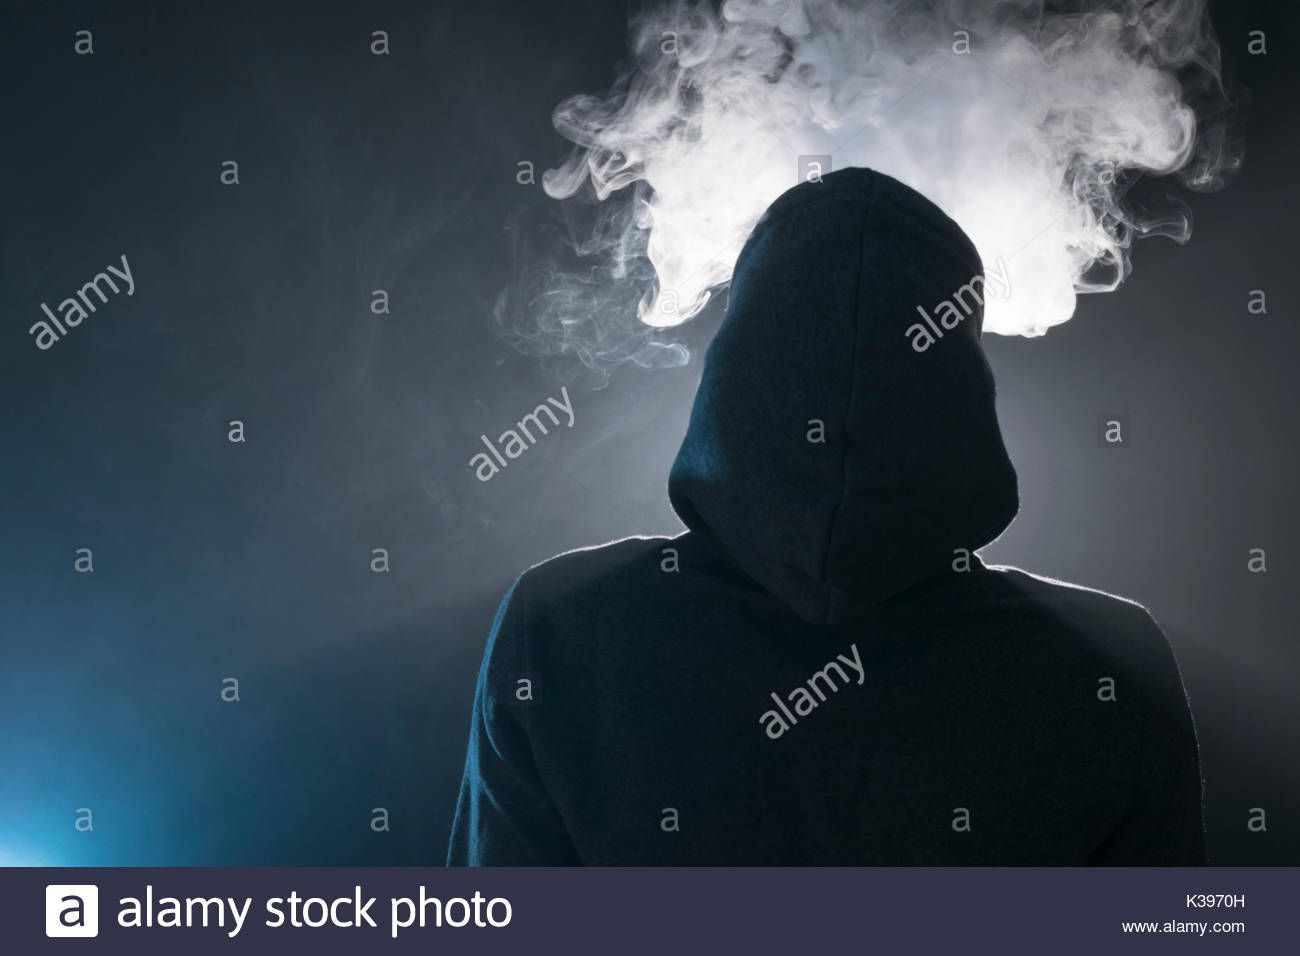 25465e74 Isolated young man smoking an electronic cigarette on a dark background,  holding a vaping device with lots of clouds. Stock Photo